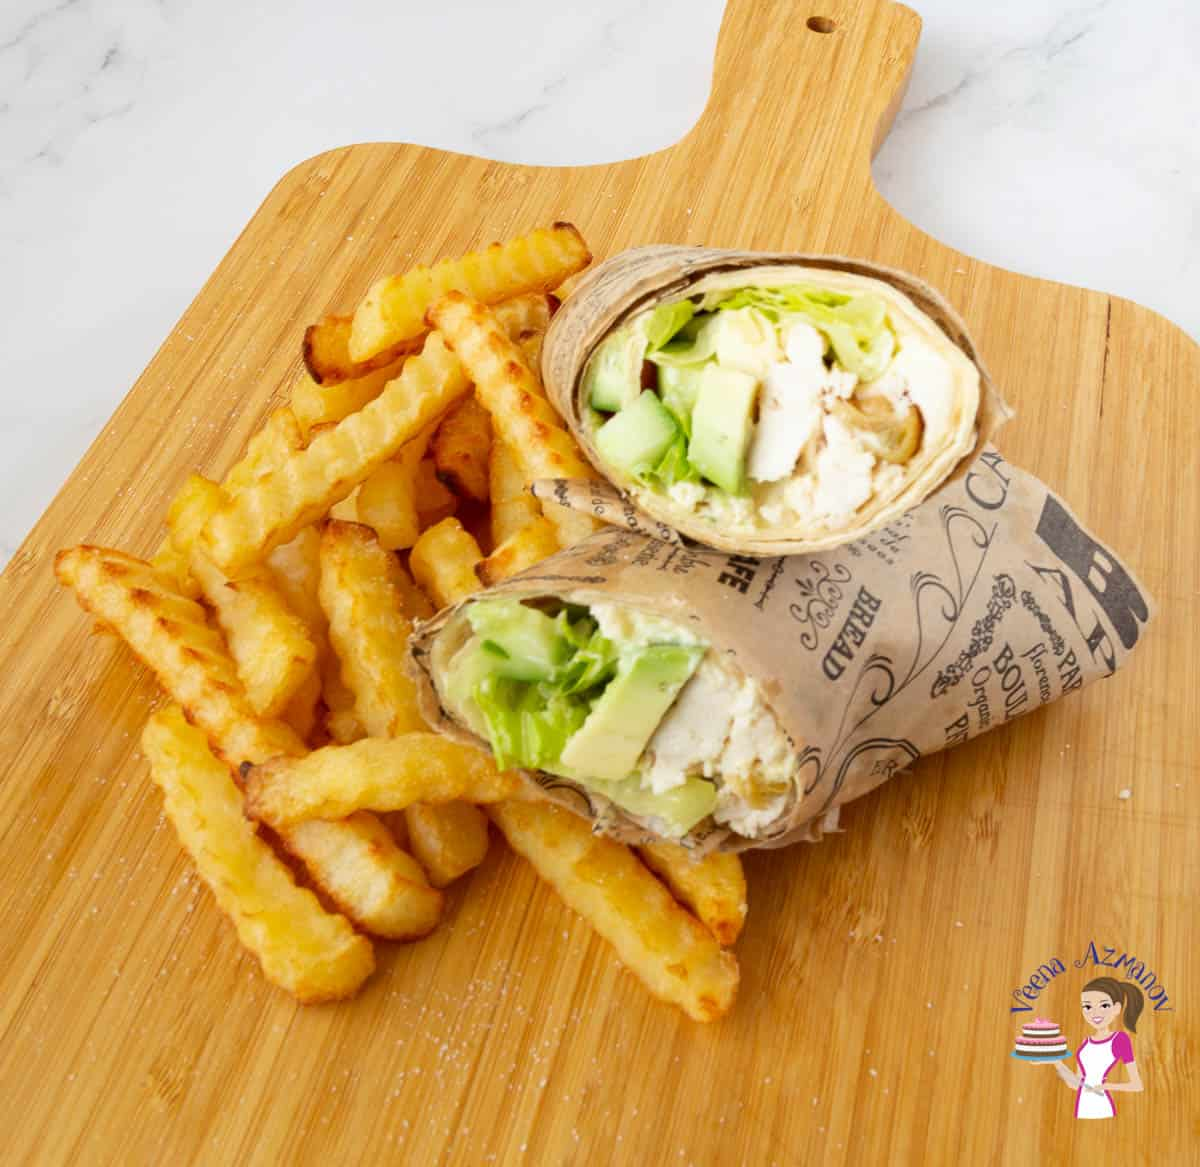 A tortilla sandwich wrap on a wooden board